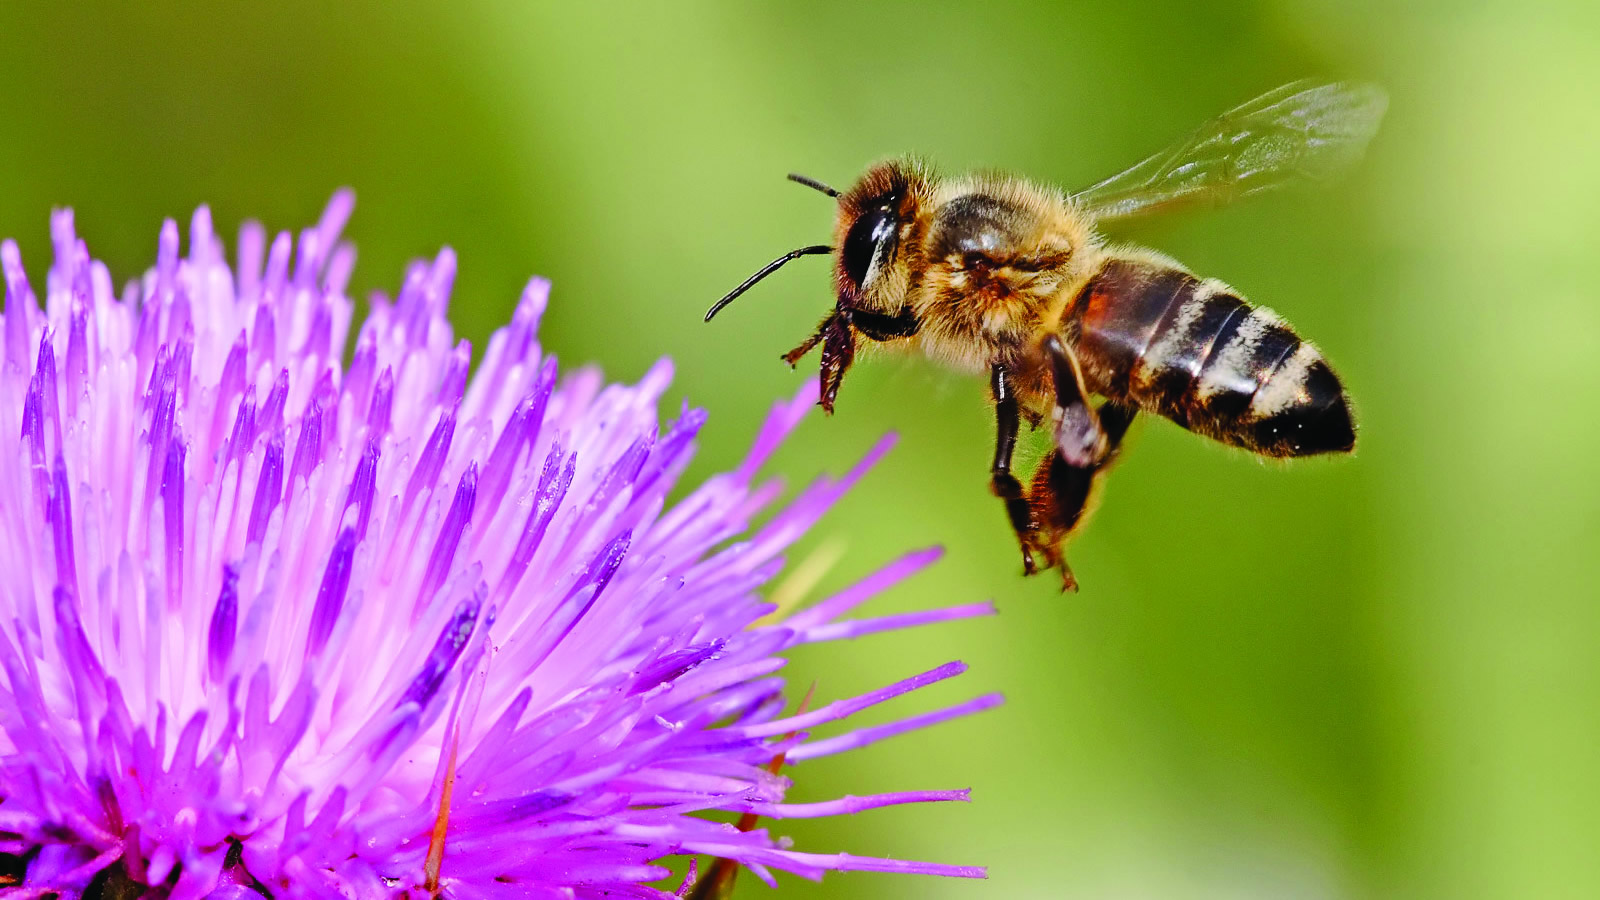 <h4>SAVE THE BEES</h4><h5>Goal: To stem the alarming decline in bees and other pollinator species, let's stop using the bee-killing pesticides known as neonicotinoids.</h5><em>sheliapic76 via Flickr</em>